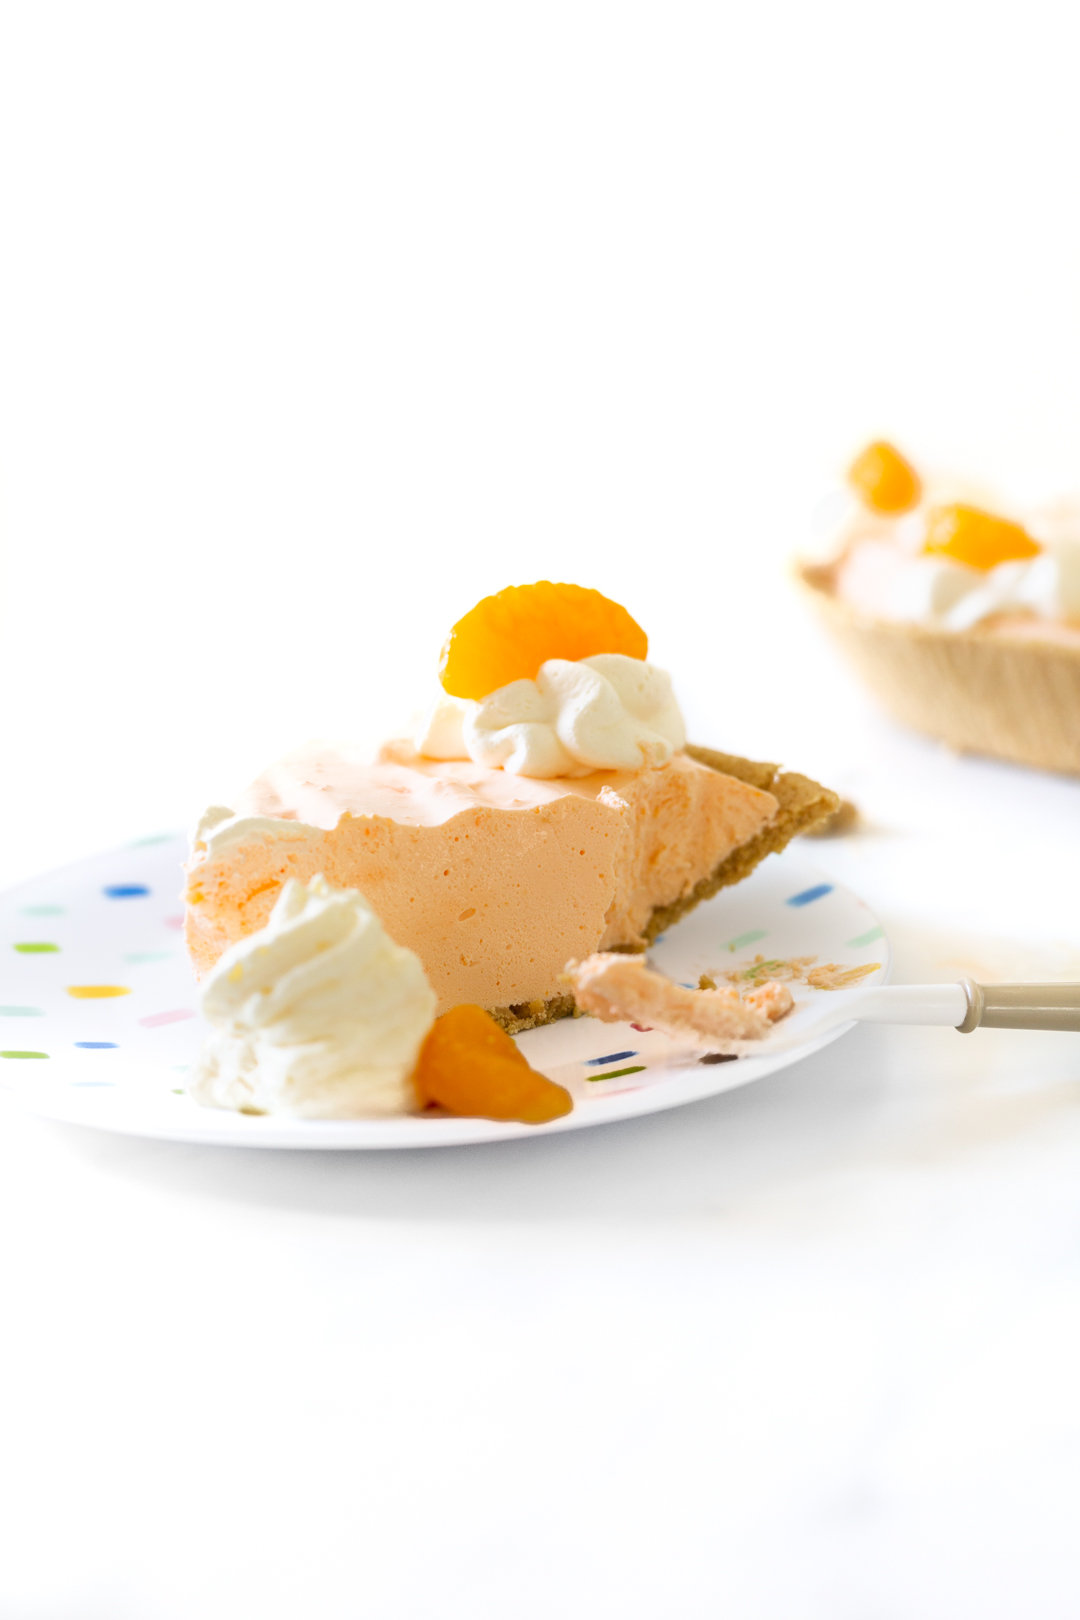 rich summer pie, slice shown on a plate with whipped cream and mandarin orange